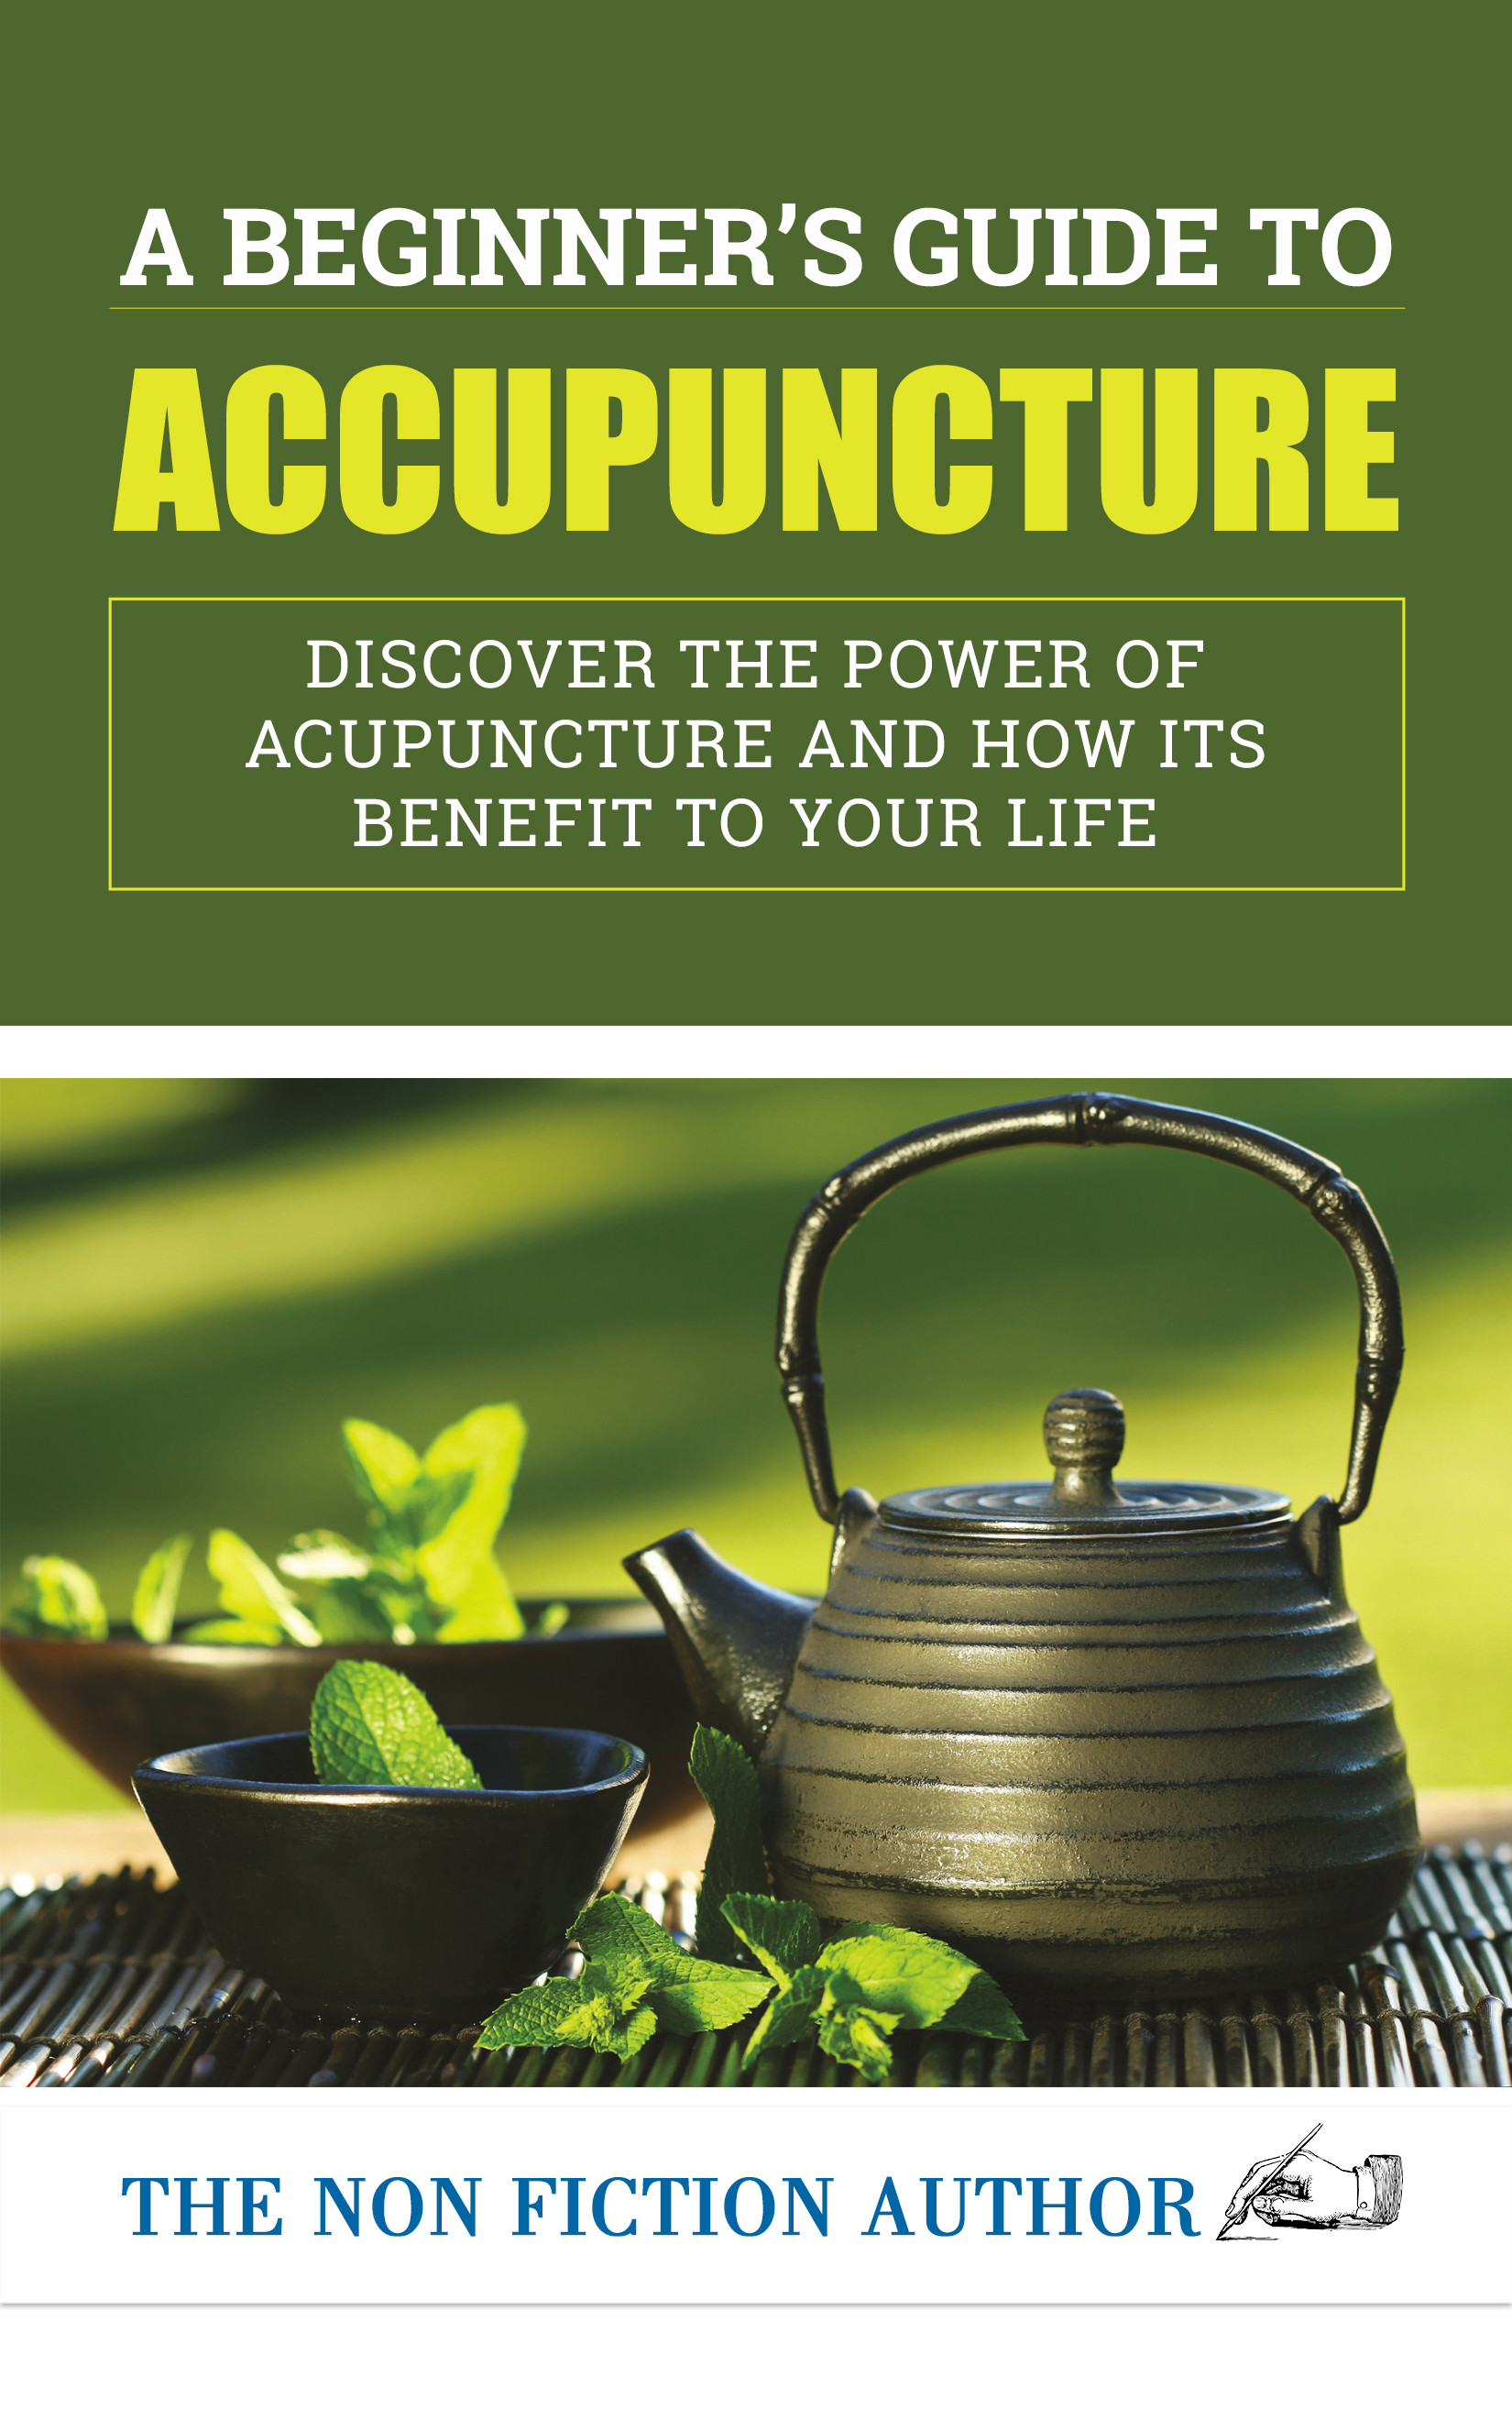 A Beginner's Guide to Acupuncture